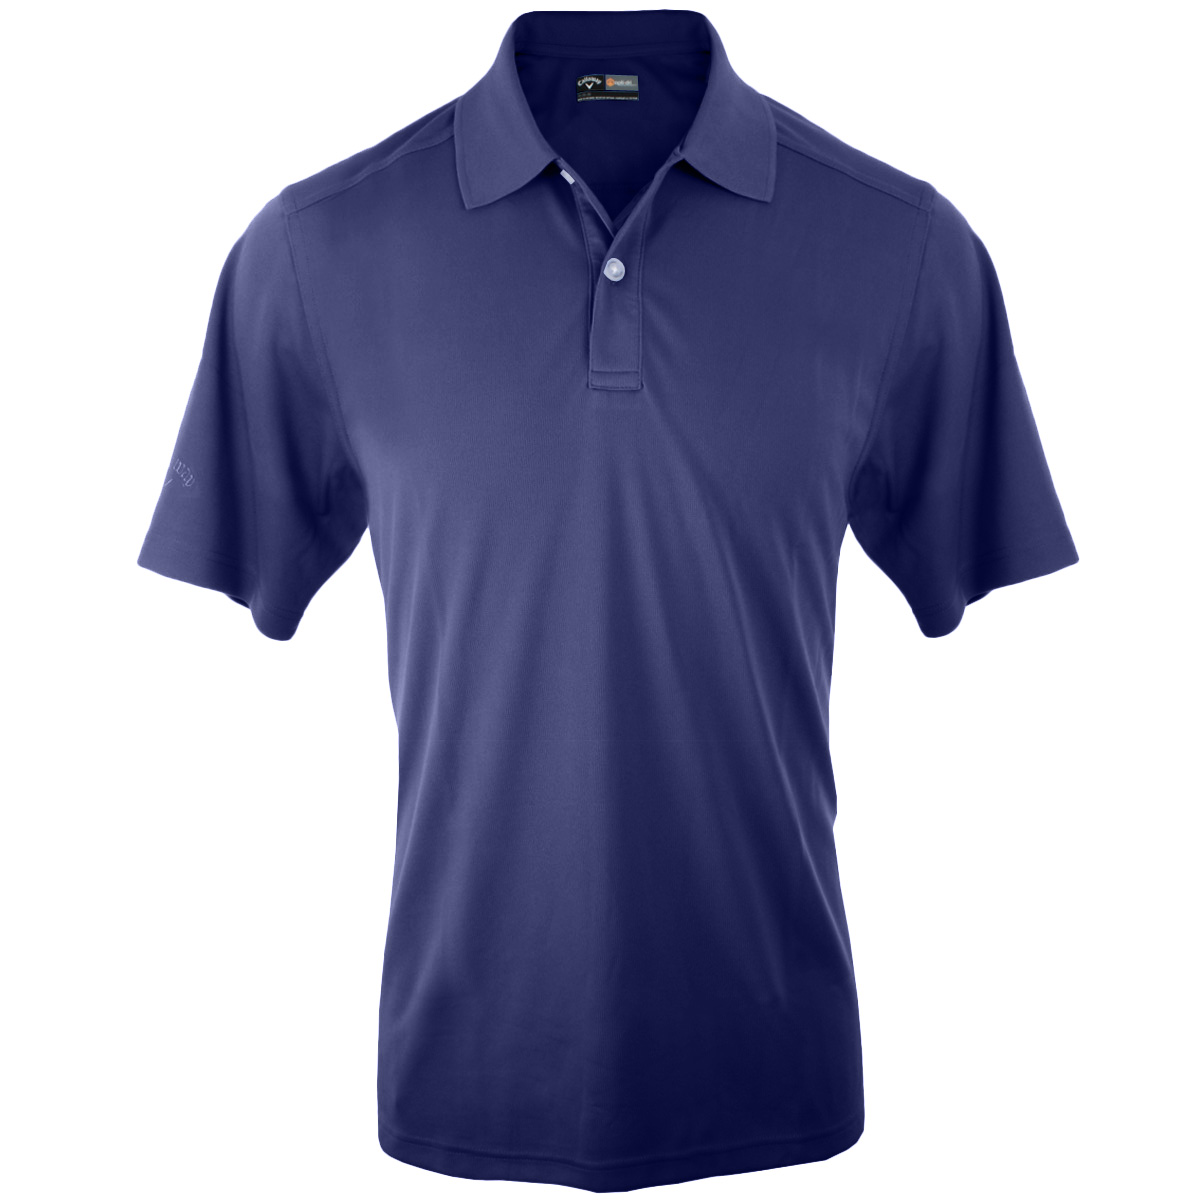 Callaway golf mens opti dri poly emblem textured polo for Polo golf shirts for men